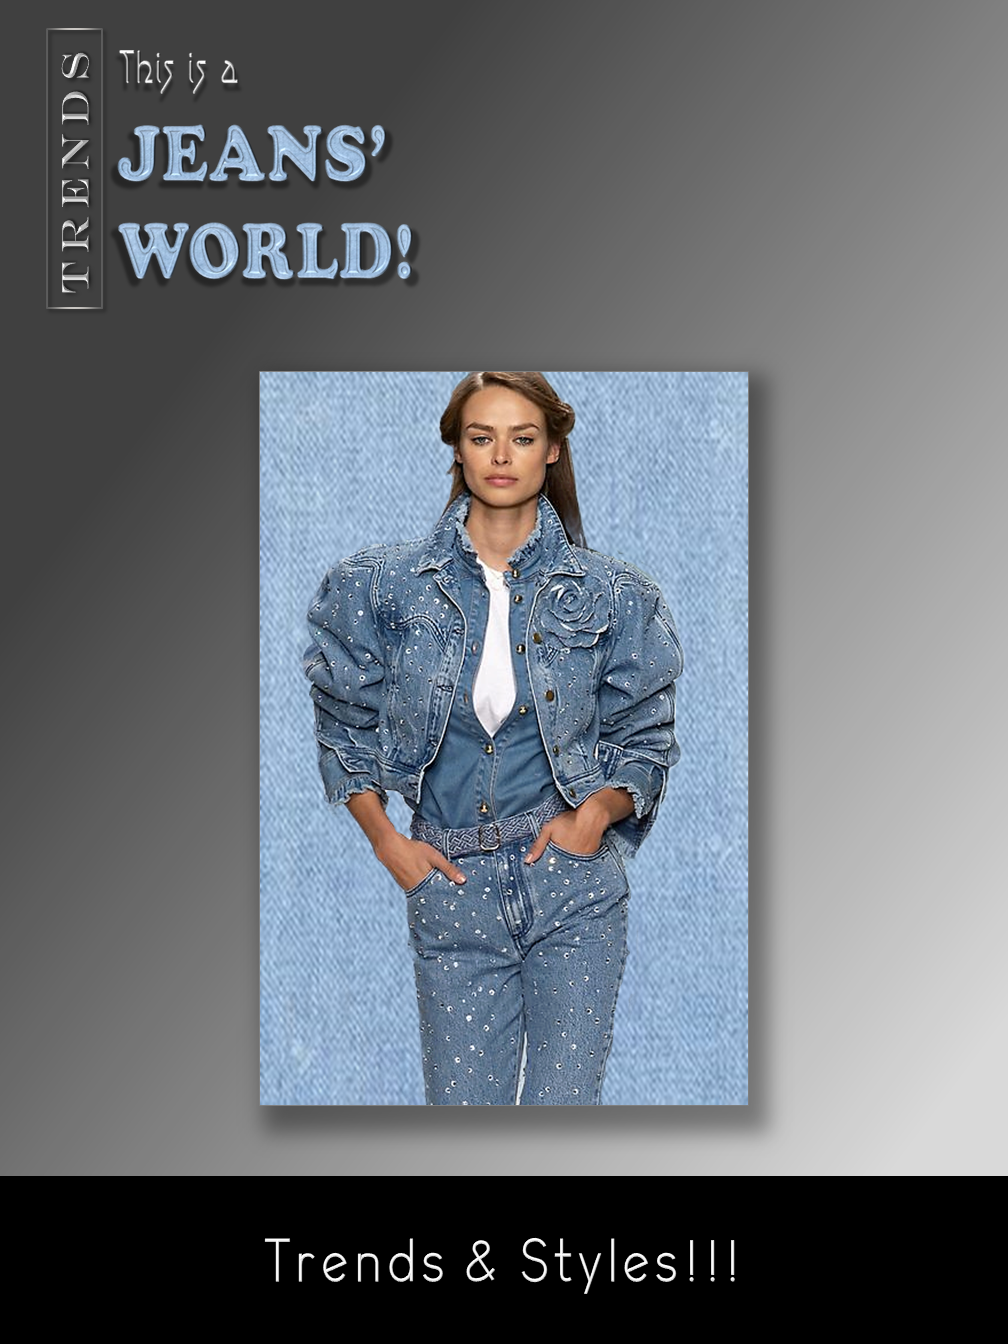 This is a Jeans World